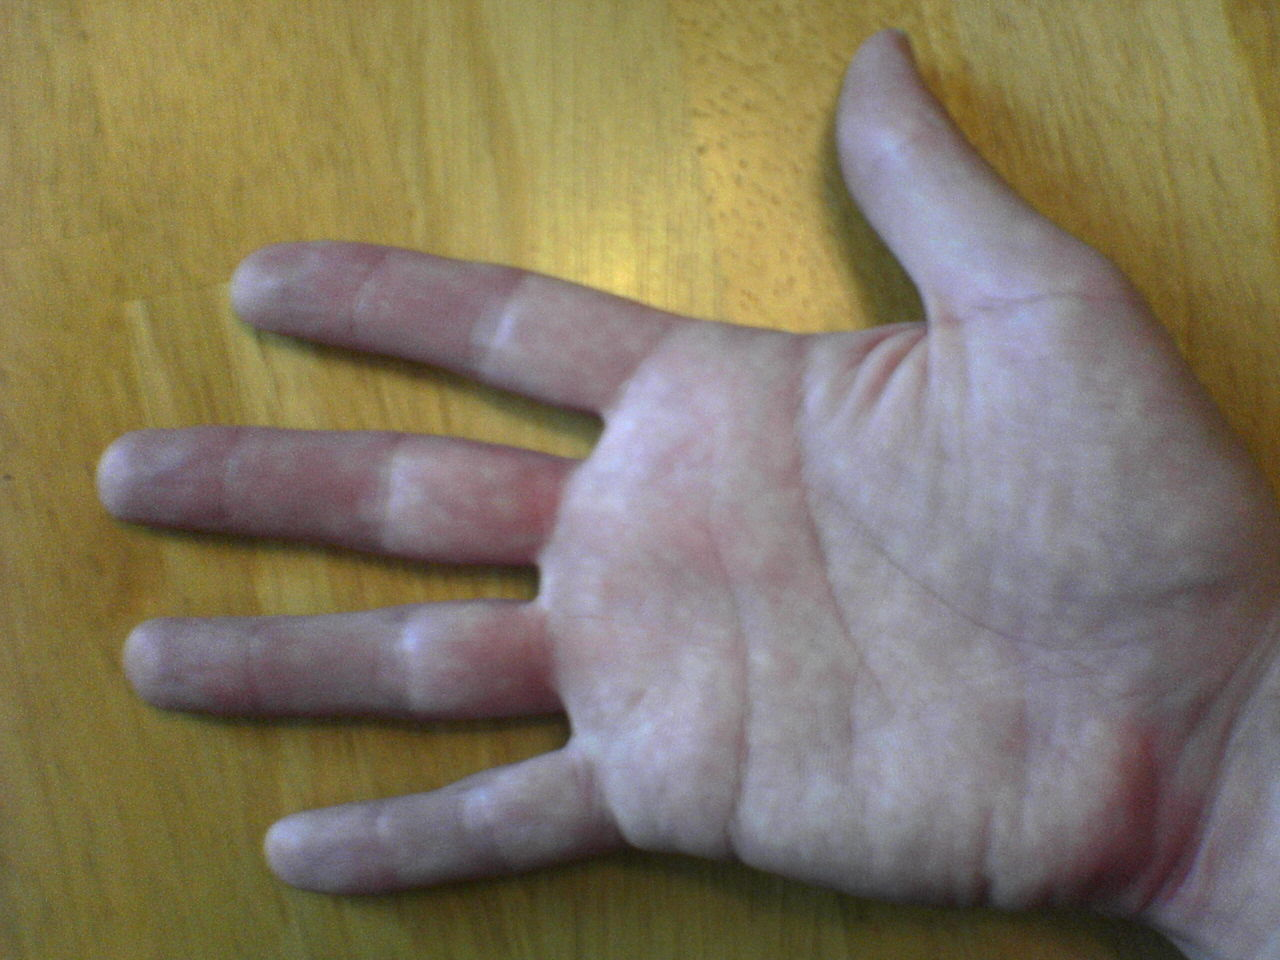 File:Right hand.JPG  Wikipedia, the free encyclopedia